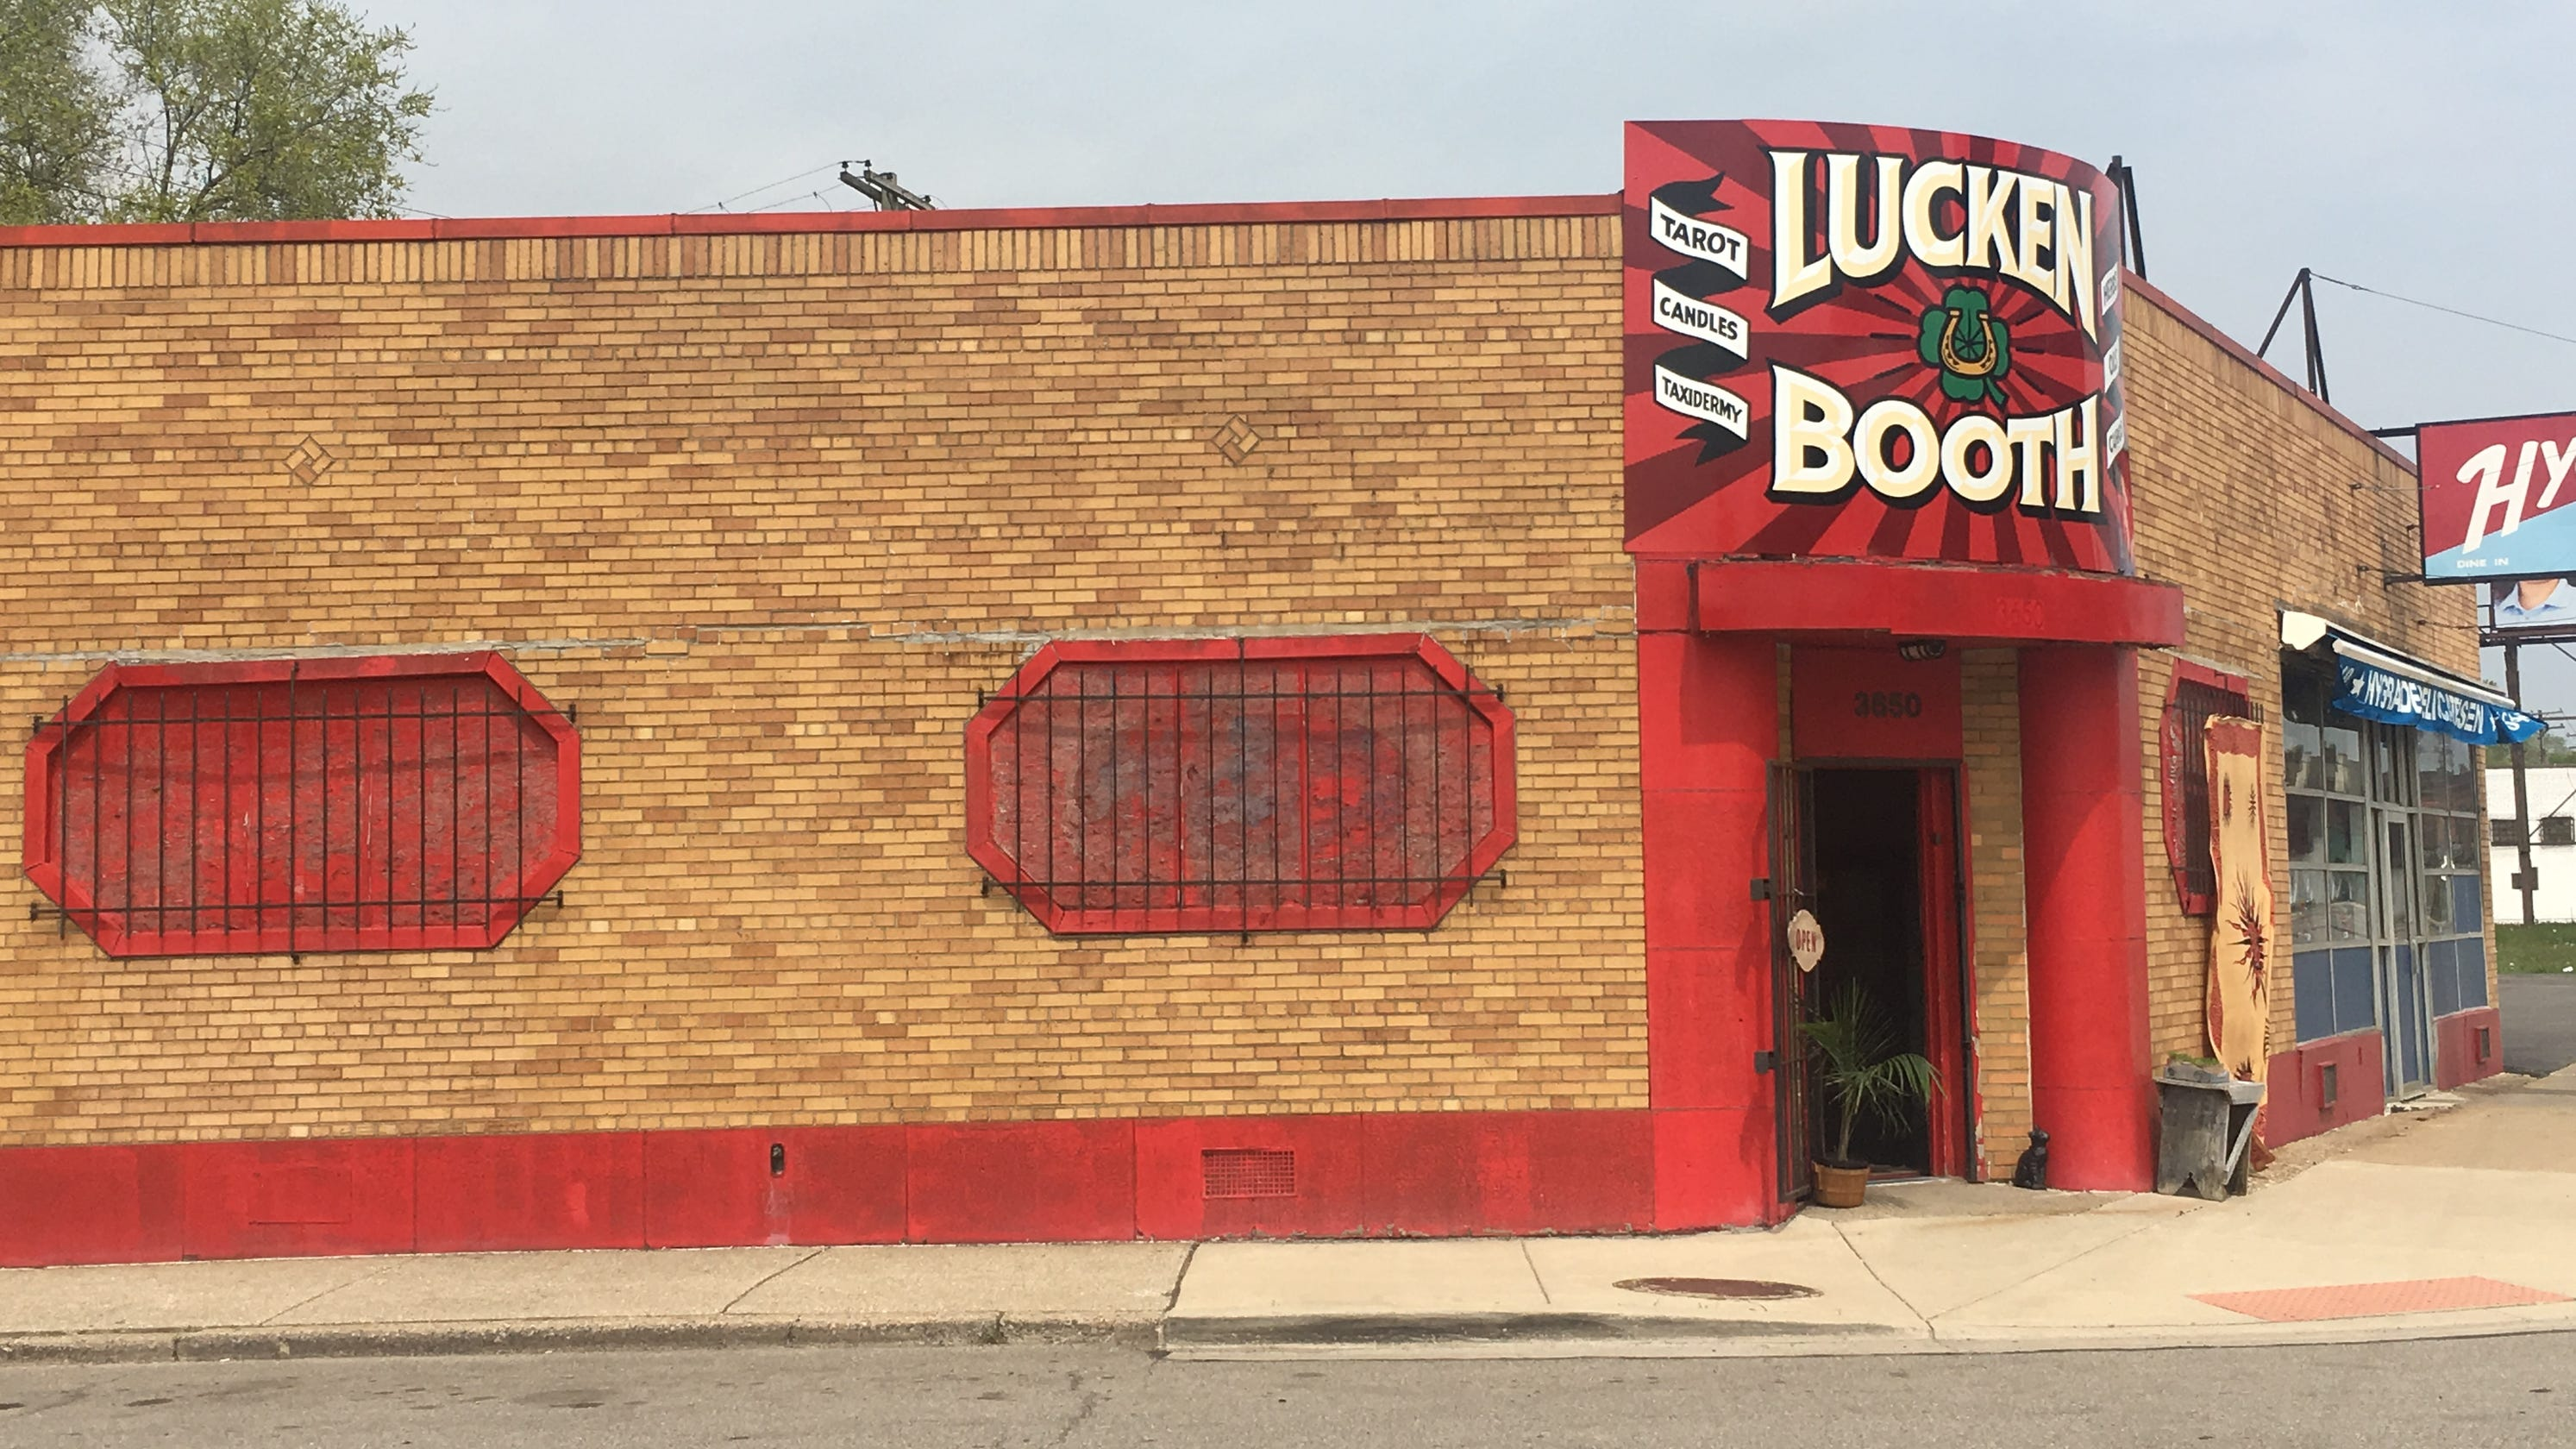 Luckenbooth in Detroit's Corktown has psychic readings, lucky charms